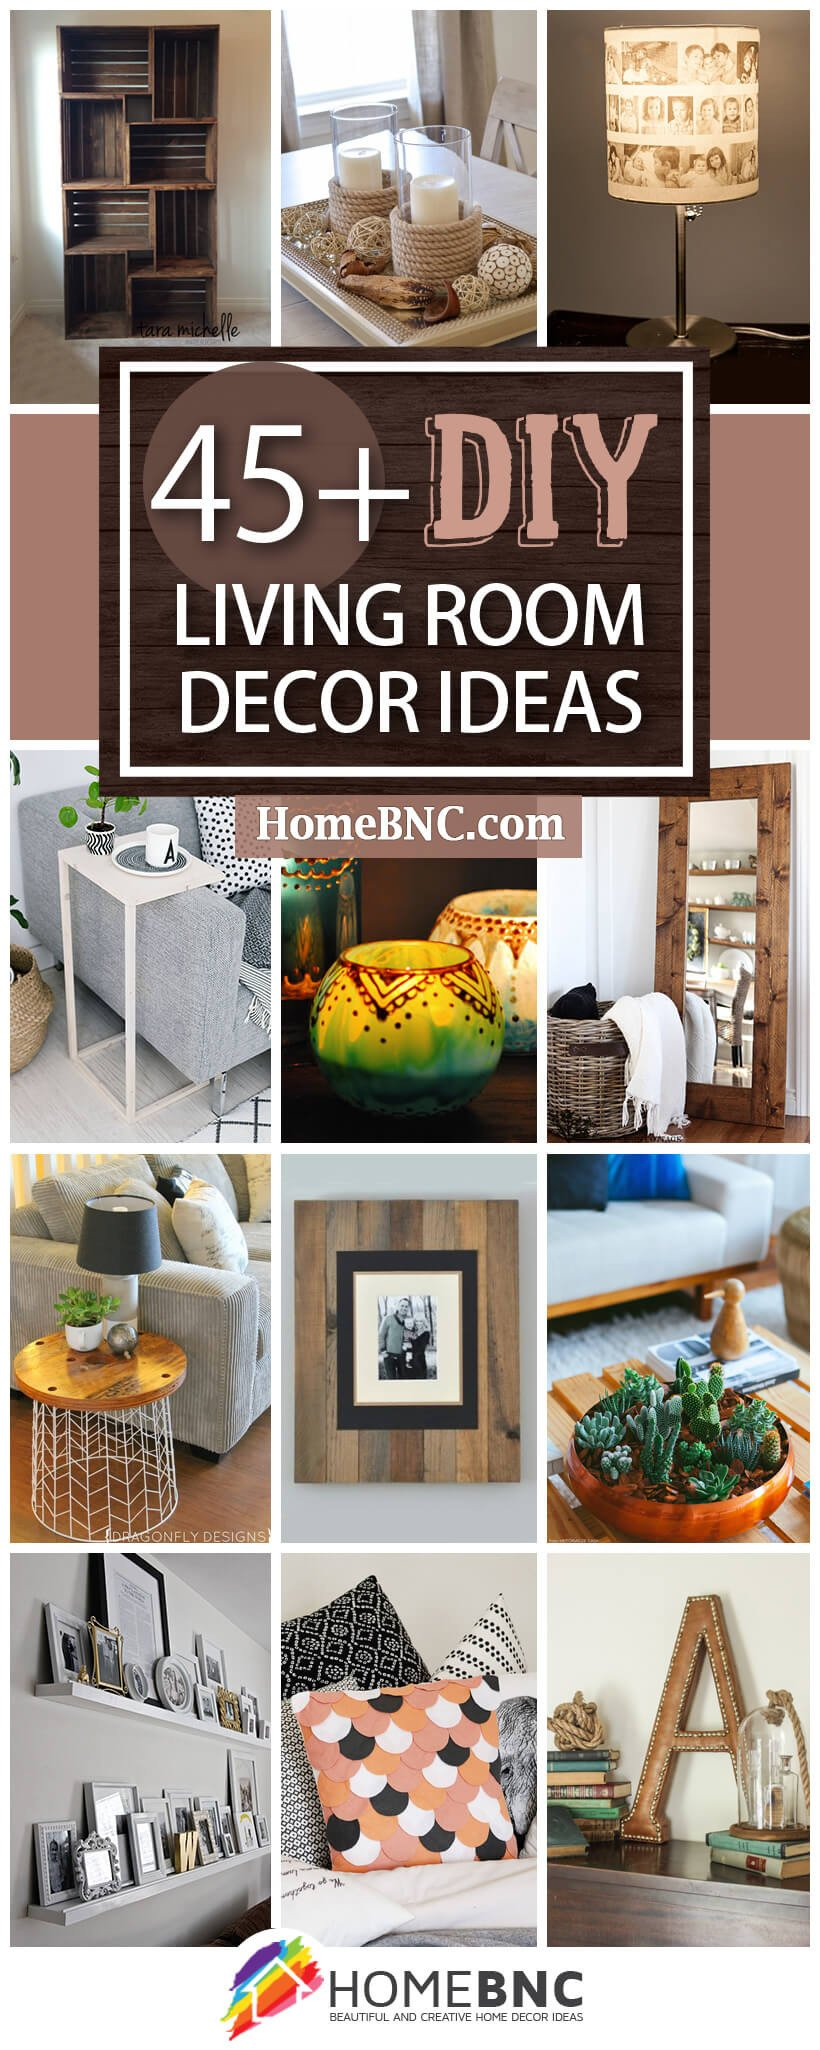 Diy Living Room Decor Ideas 45 Best Diy Living Room Decorating Ideas and Designs for 2019